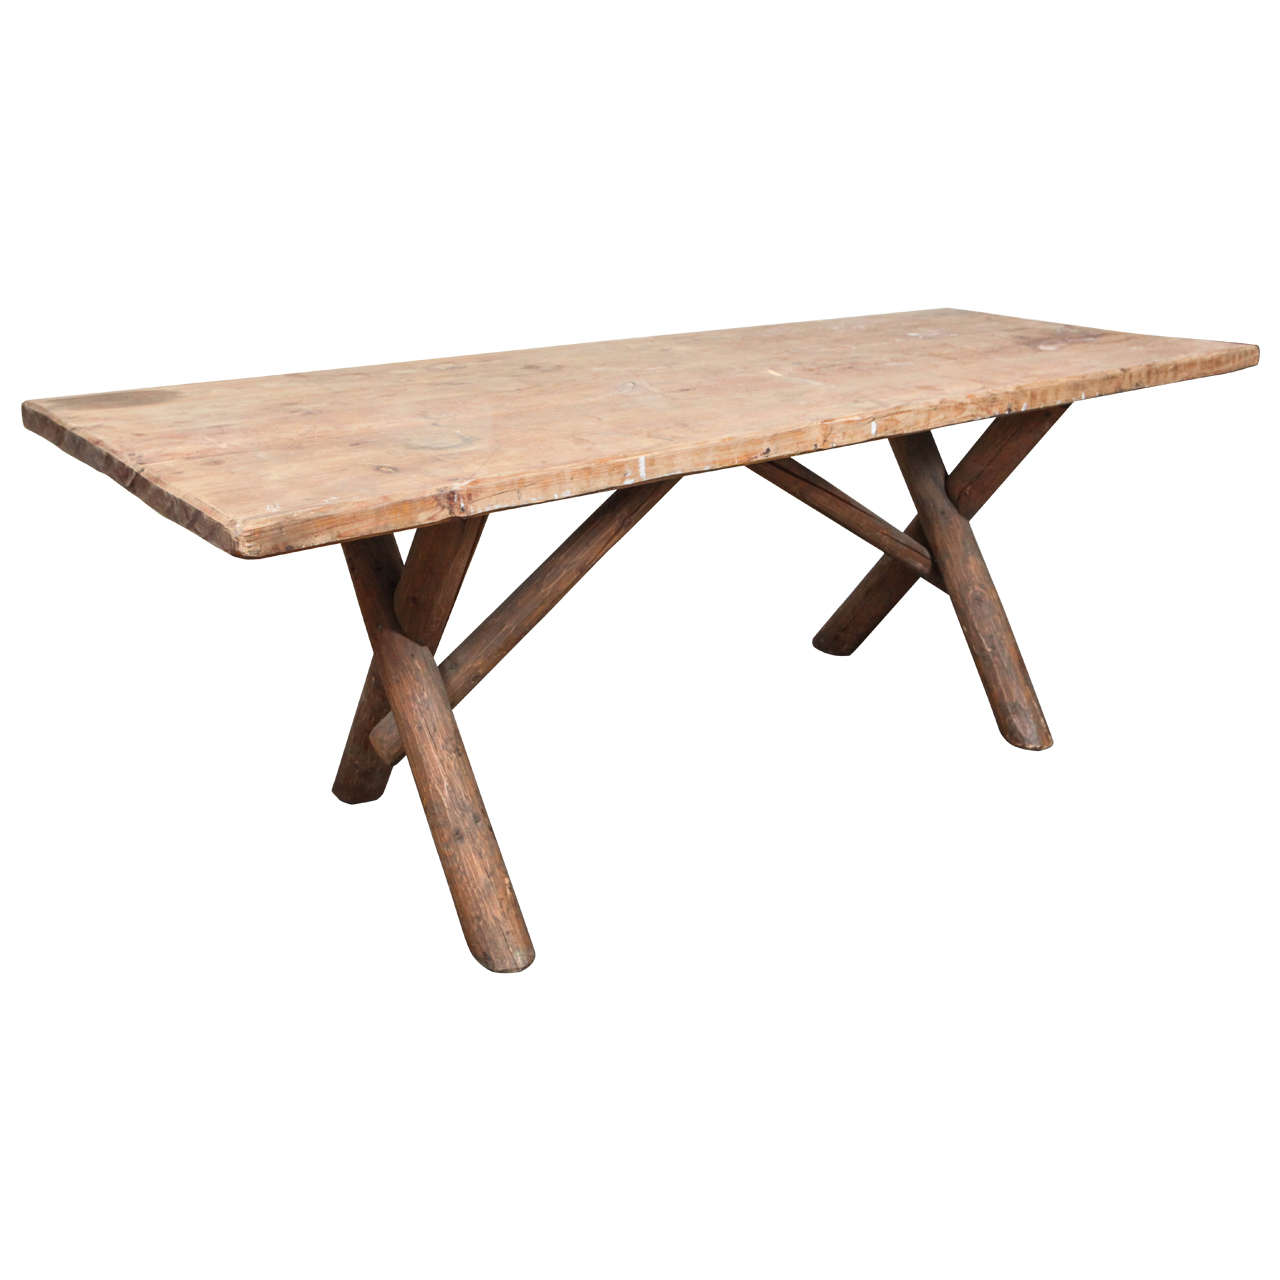 Rustic American Dining Farm Table with X Base For Sale at 1stdibs